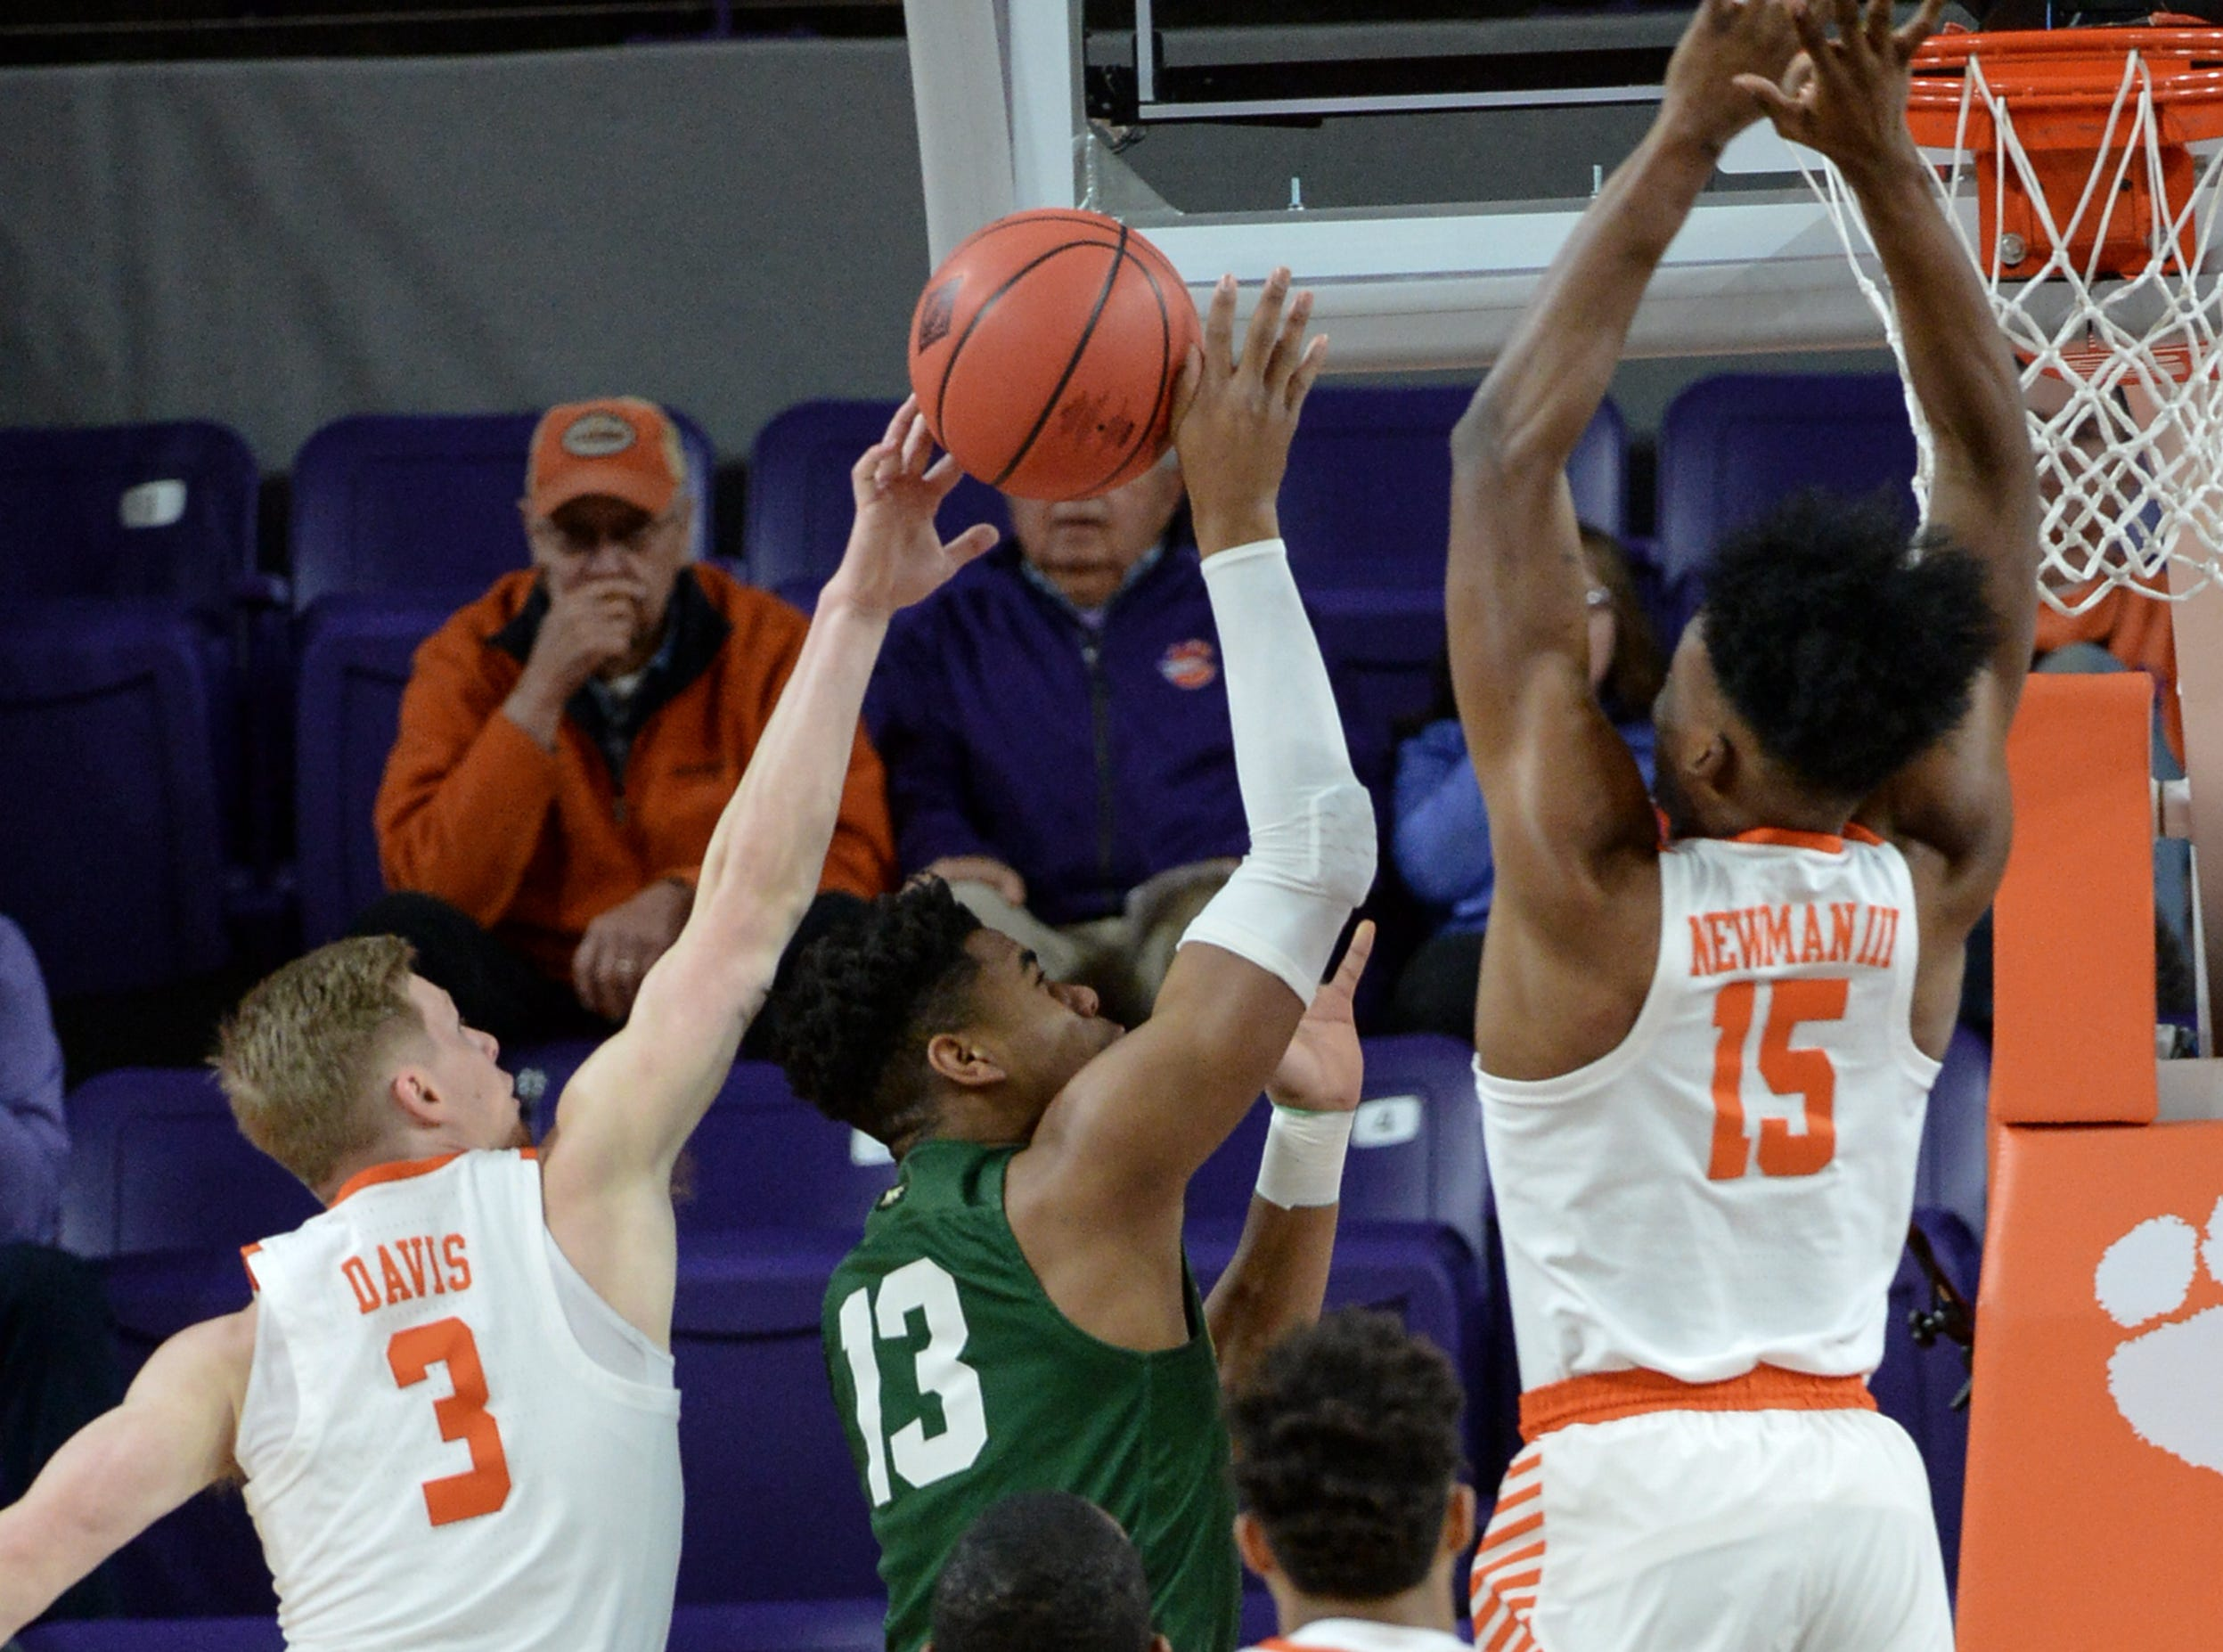 Clemson guard Lyles Davis (3) blocks the shot of Wright State guard Malachi Smith(13) near Clemson forward John Newman (15) during the first half of the NIT at Littlejohn Coliseum in Clemson Tuesday, March 19, 2019.